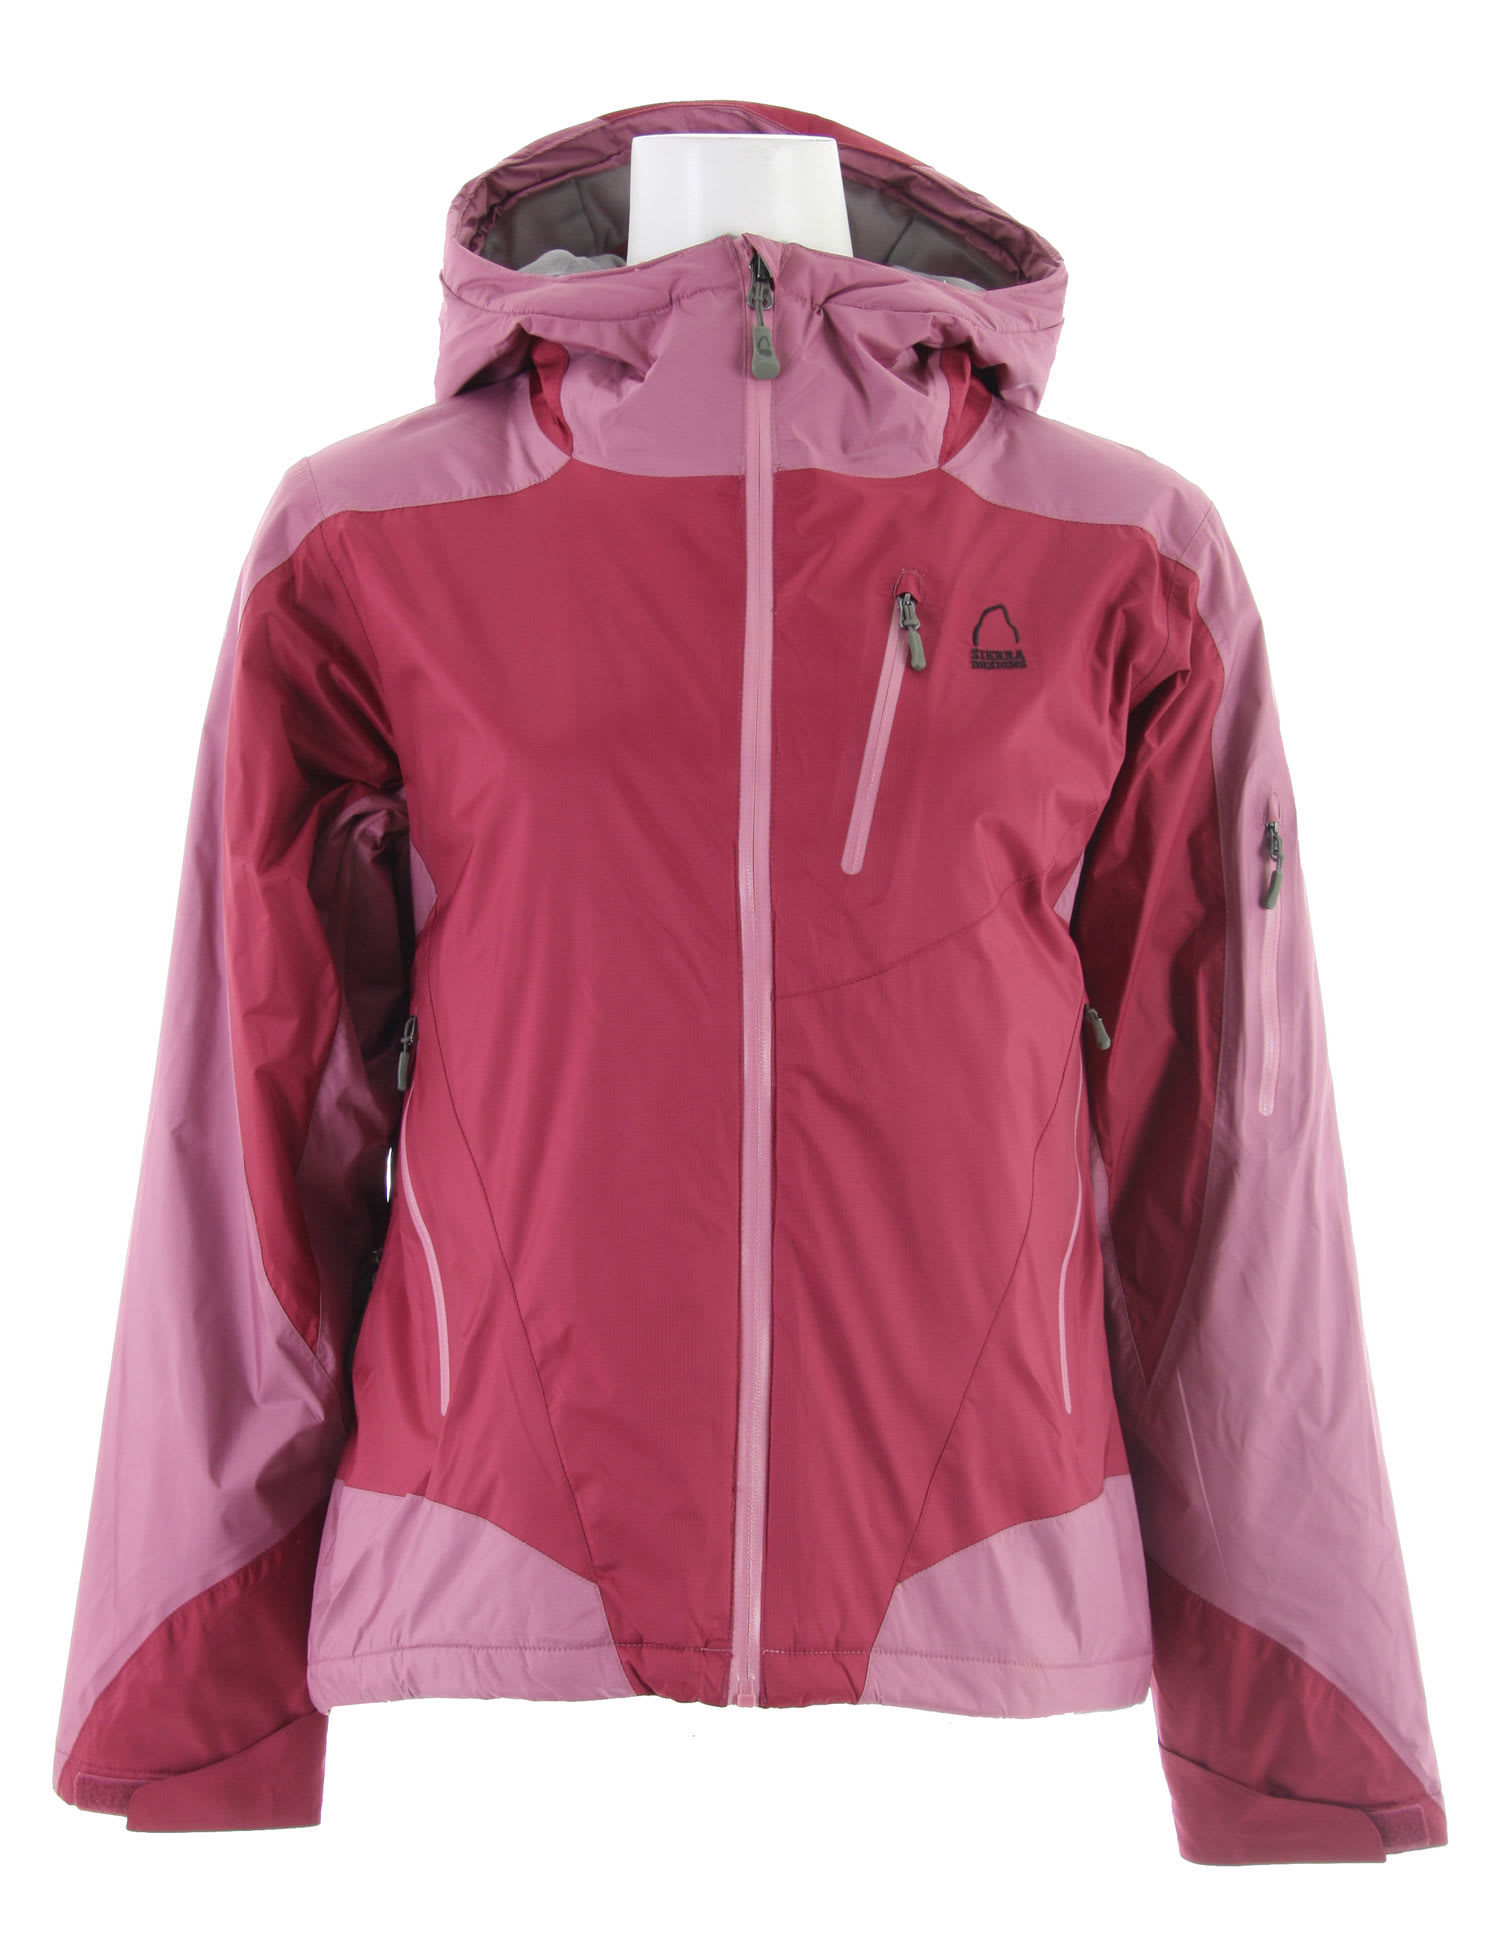 Shop for Sierra Designs Toaster Insltd Shell Jacket Radish - Women's